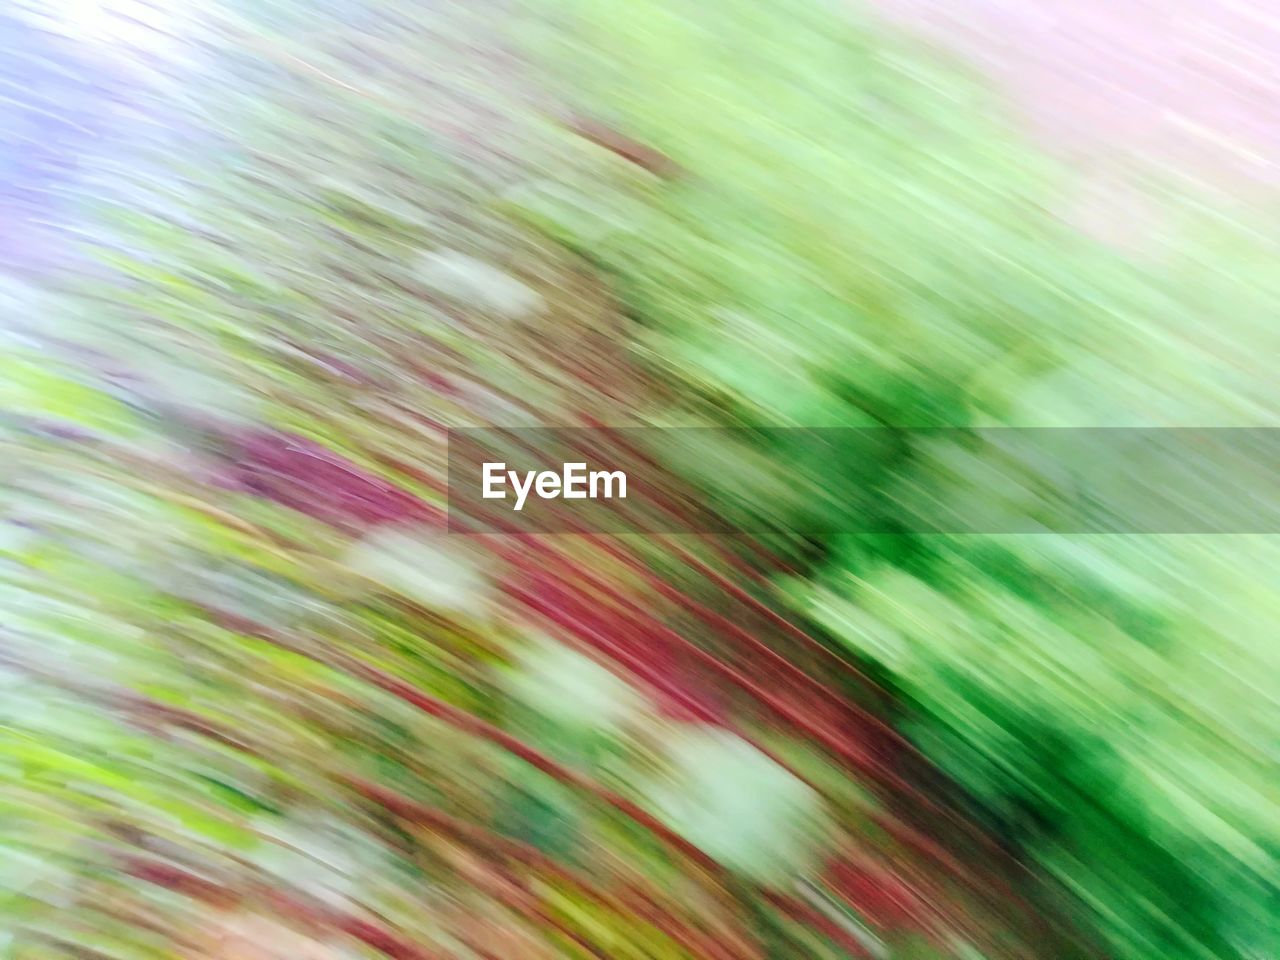 backgrounds, full frame, blurred motion, green color, no people, day, nature, close-up, pattern, growth, plant, beauty in nature, abstract, motion, selective focus, outdoors, defocused, sunlight, long exposure, tranquility